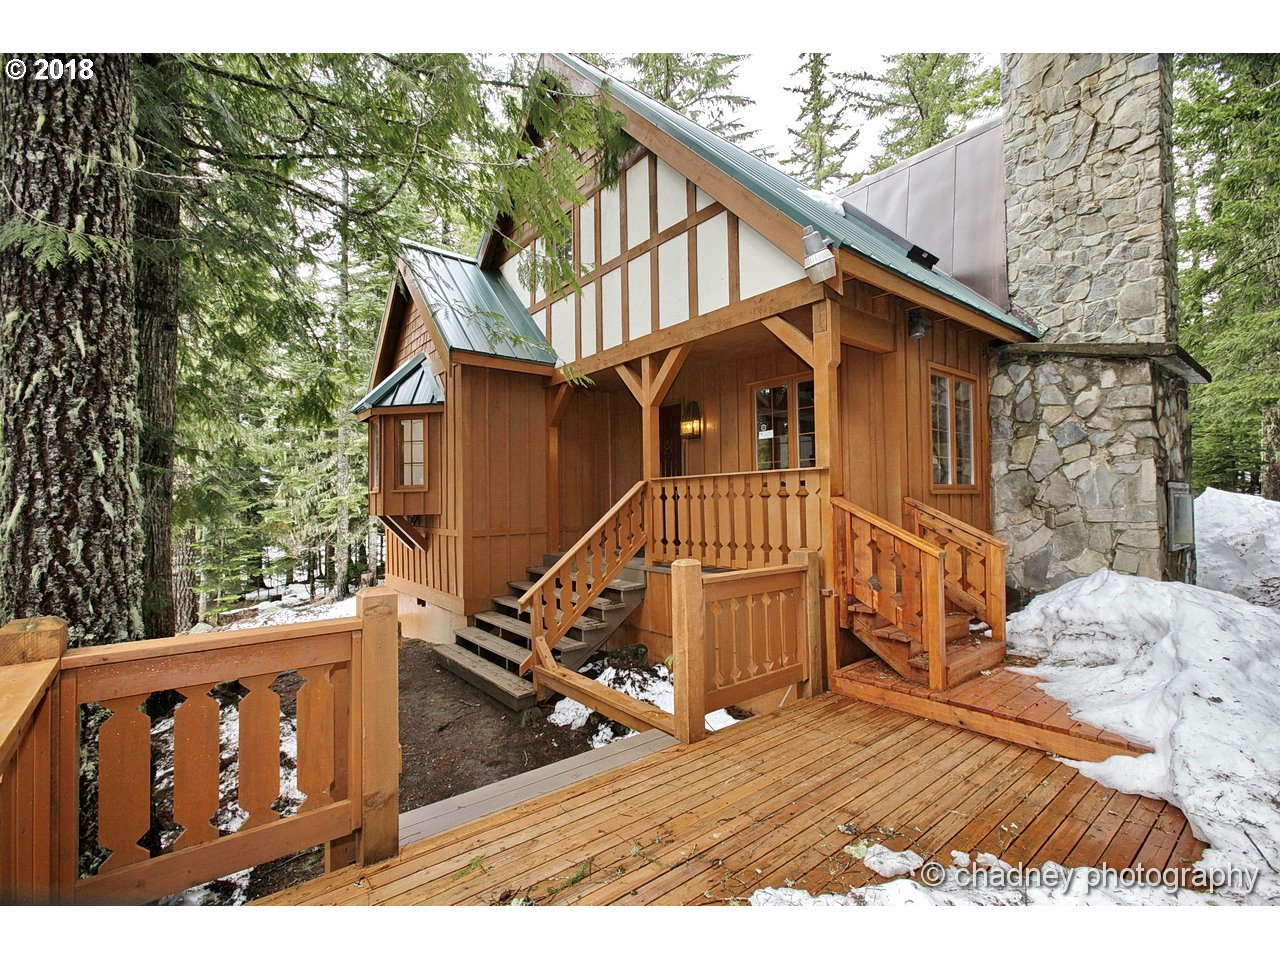 oregon states chalet for mt salmon in cabins or rooms rent welches mount hood united original river